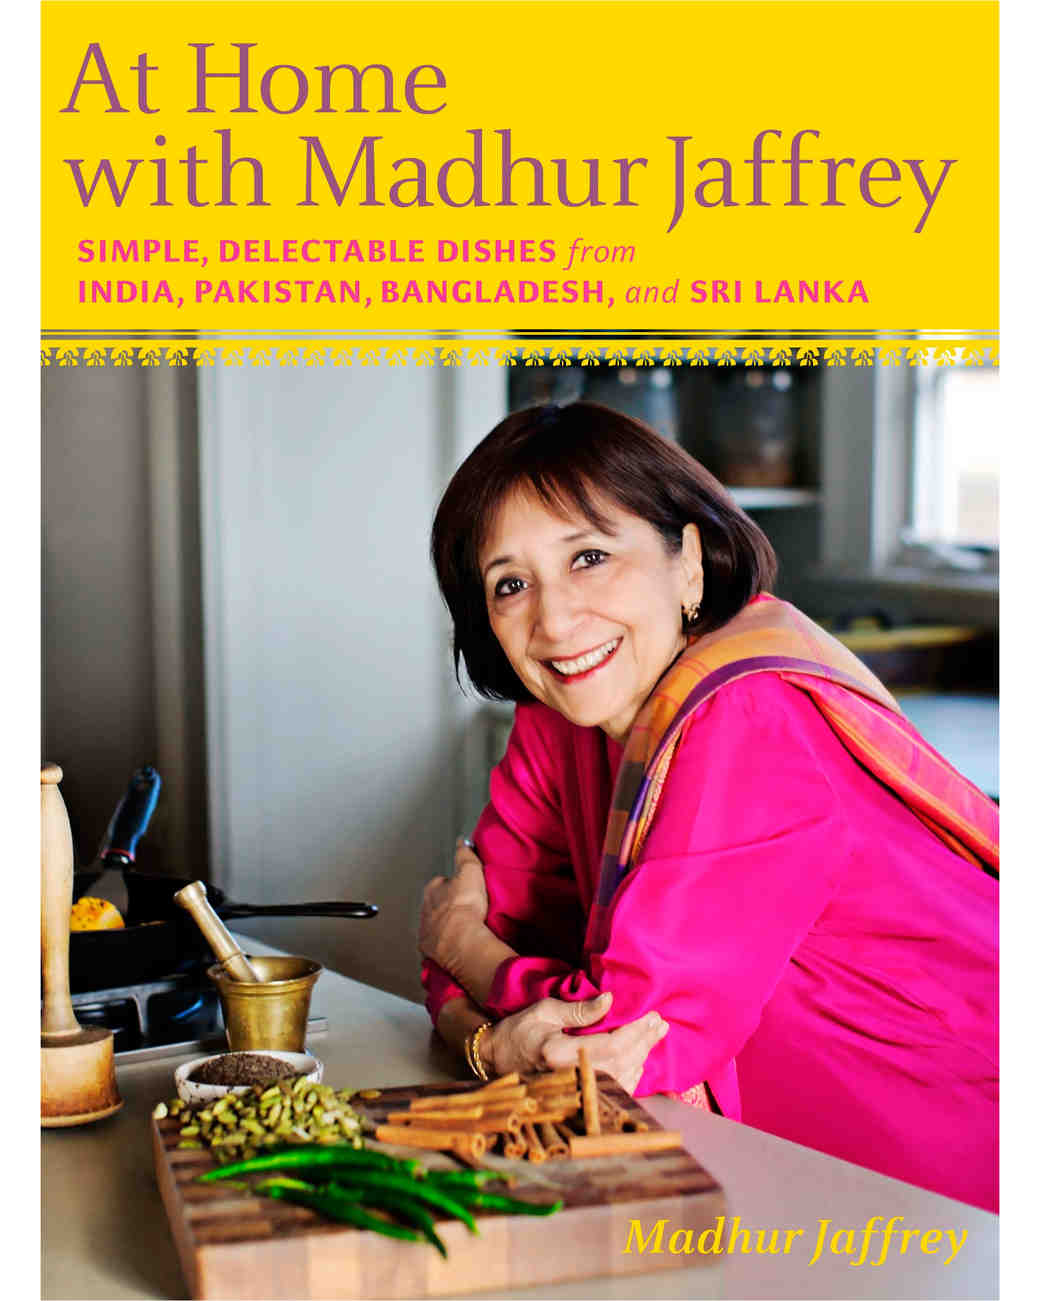 Madhur Jaffrey's Ultimate Curry Bible Cookery Book of Year 2003 Hardcover Recipe